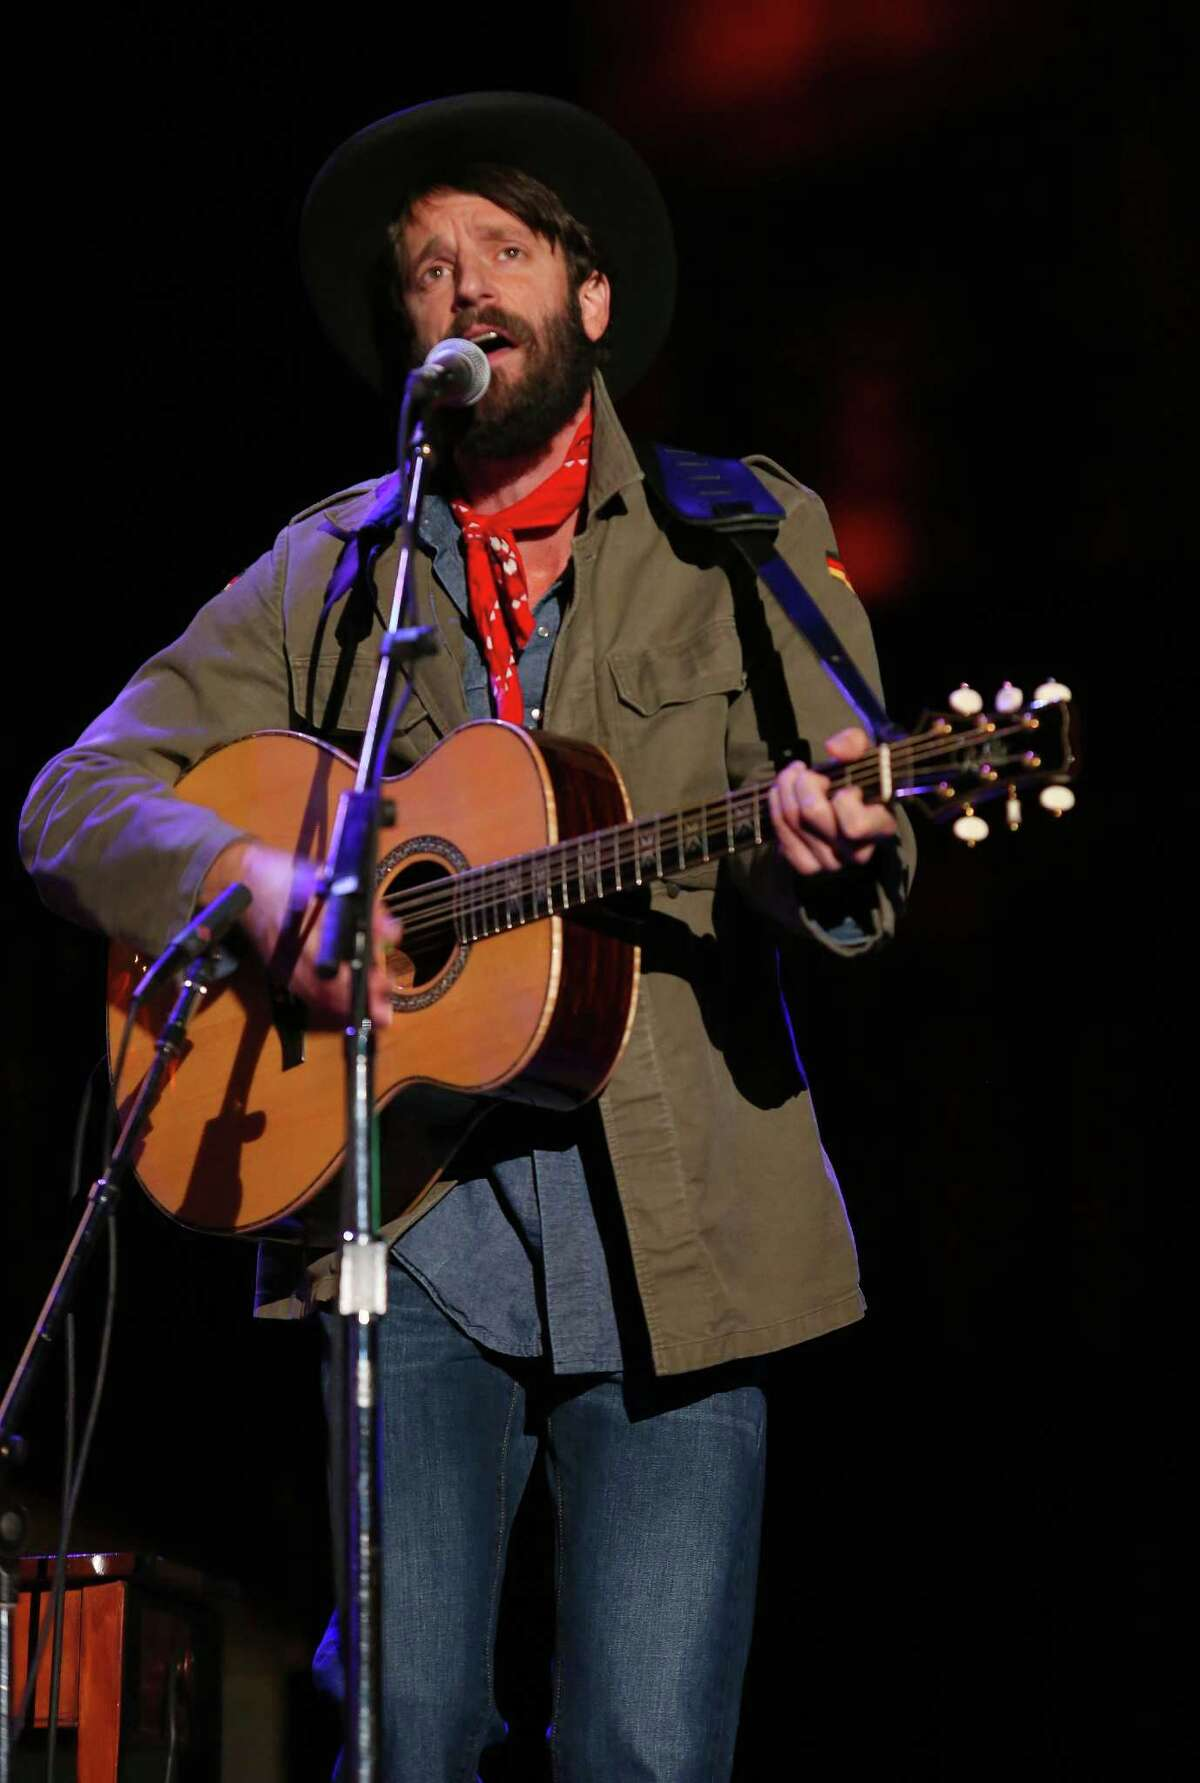 Ray Lamontagne cancelled his show scheduled for Thursday, Sept. 22, 2016, at the University of Texas at Austin Bass Concert Hall due to concern over the campus carry law. The new law allows holders of concealed-carry licenses to bring their weapons to campus. Continue clicking to have your questions about campus carry answered.